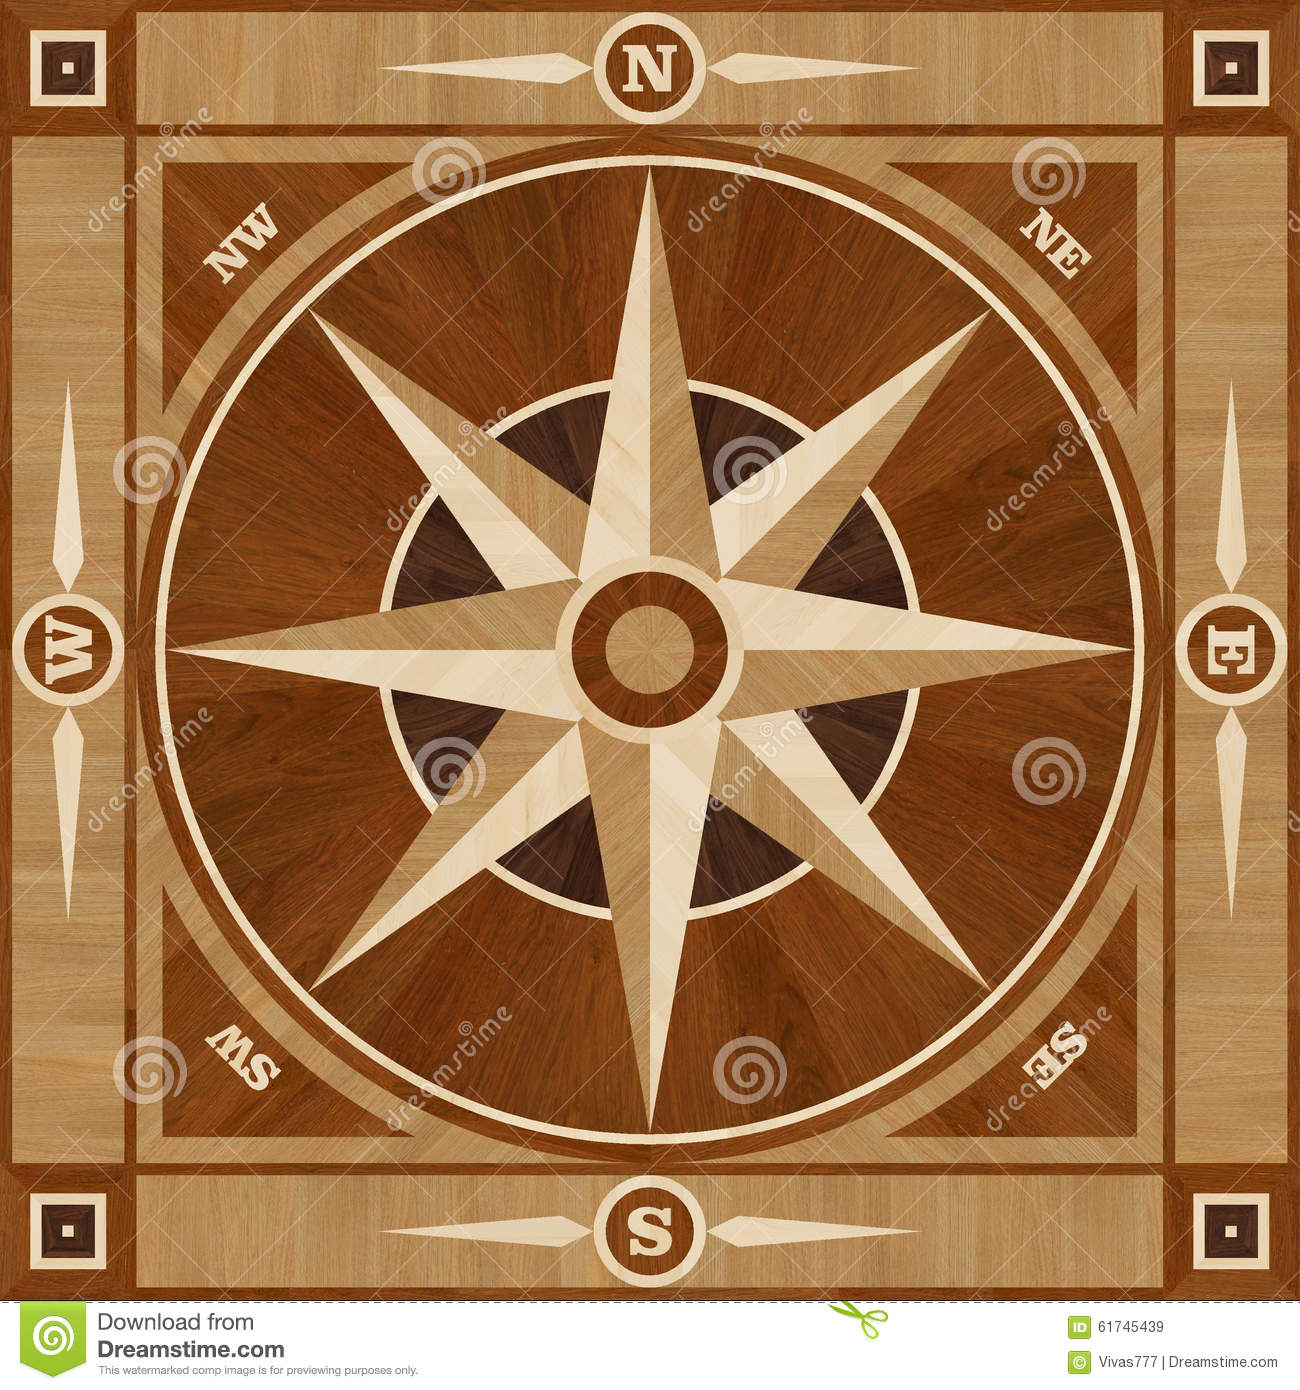 Medallion Design Parquet Floor Compass Rose Stock